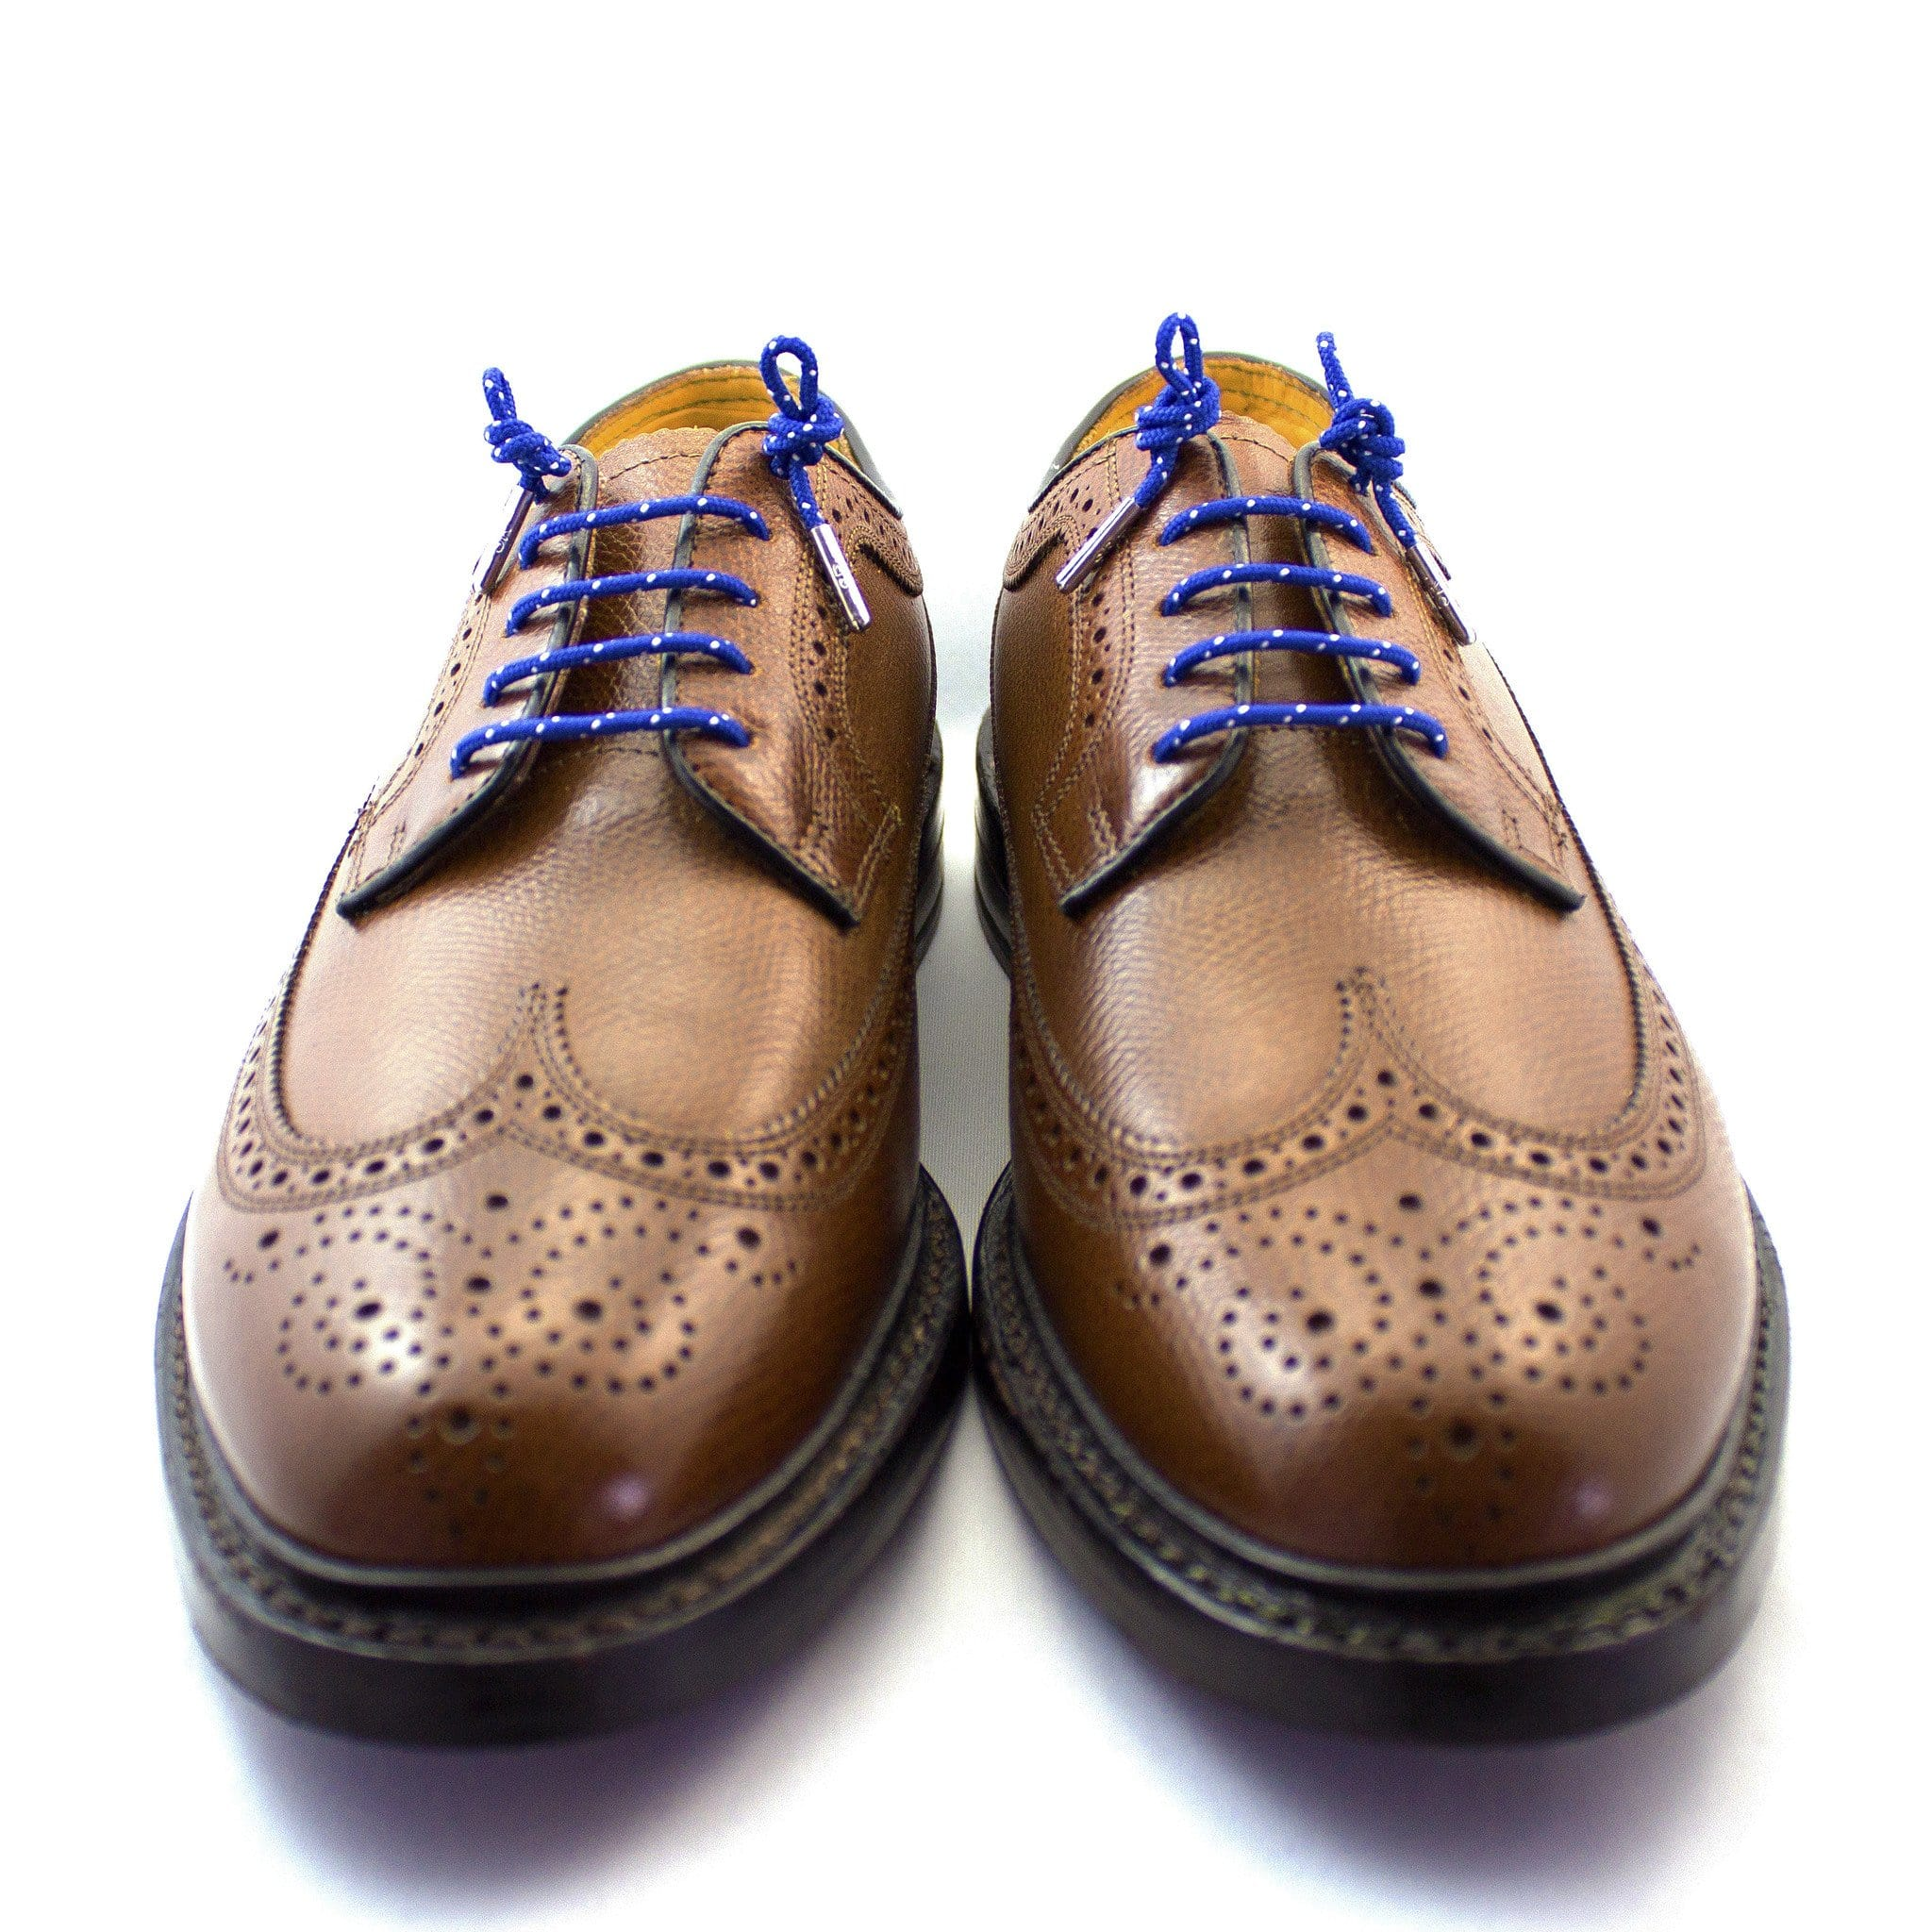 "Royal blue and white dots laces for dress shoes, Length: 27""/69cm-Stolen Riches"